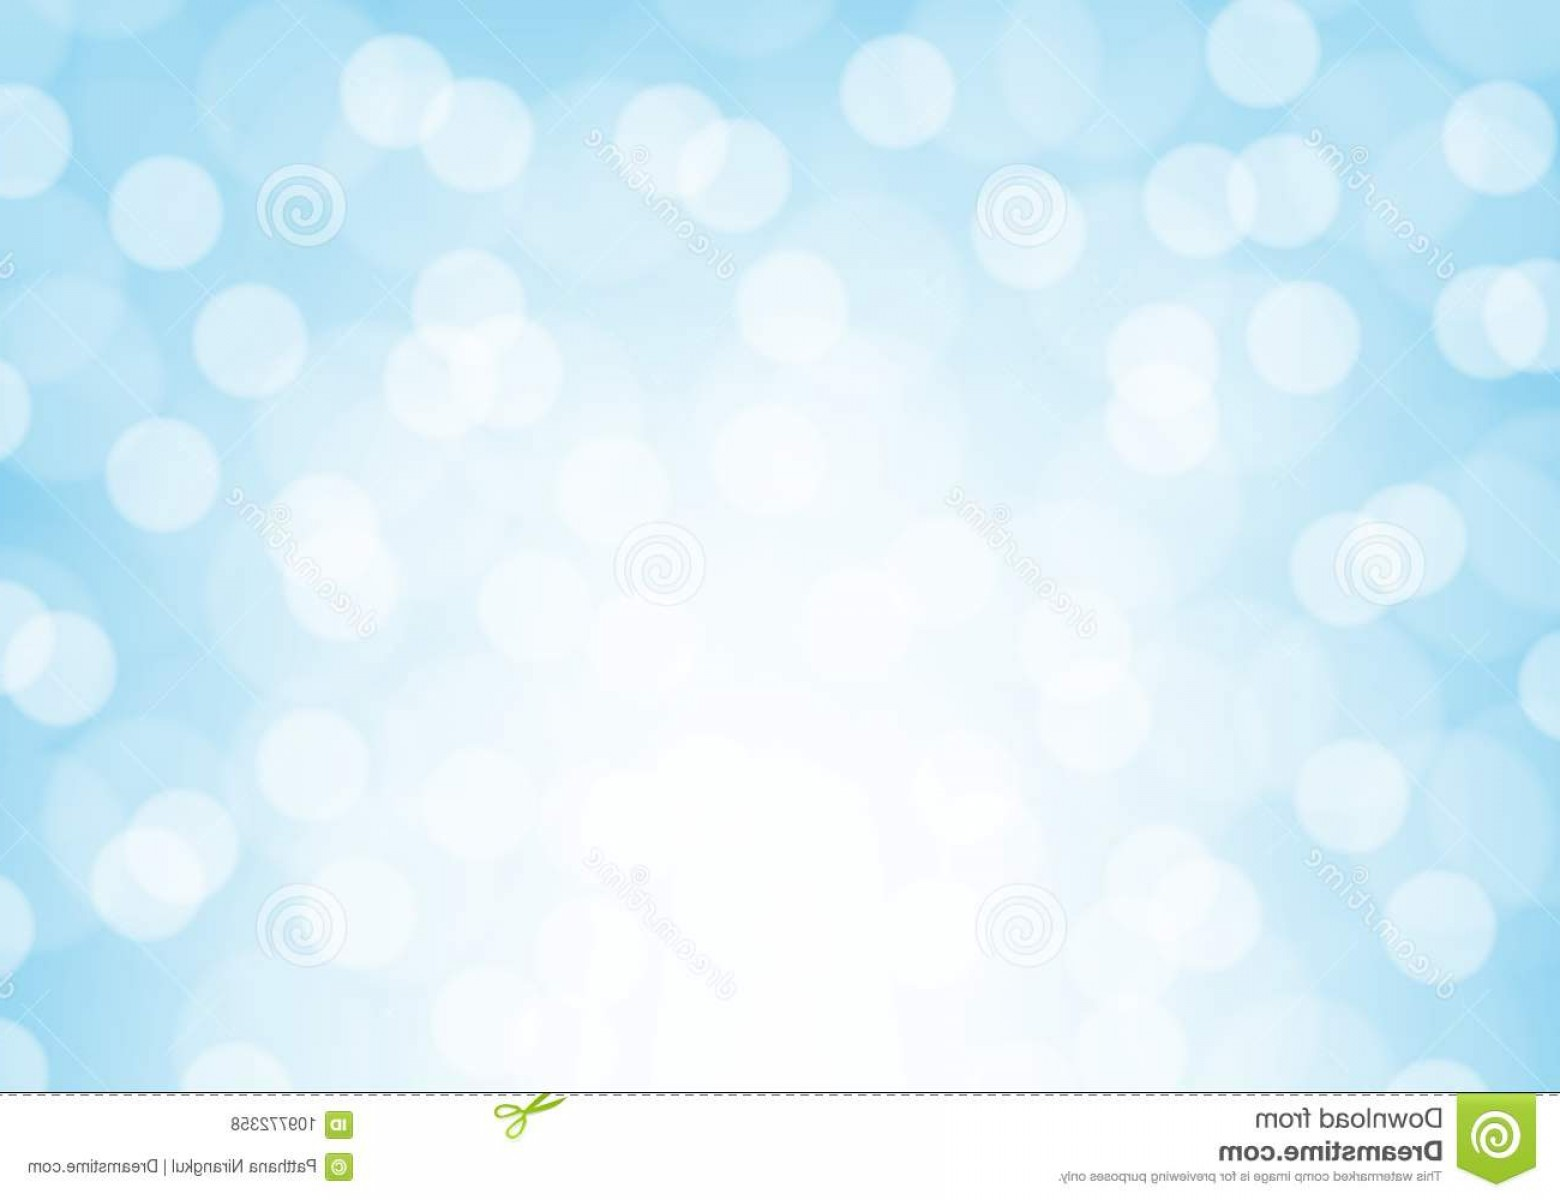 Vector Blue Luxury: Abstract White Bokeh Light Blur Blue Luxury Background Vector Illustration Image